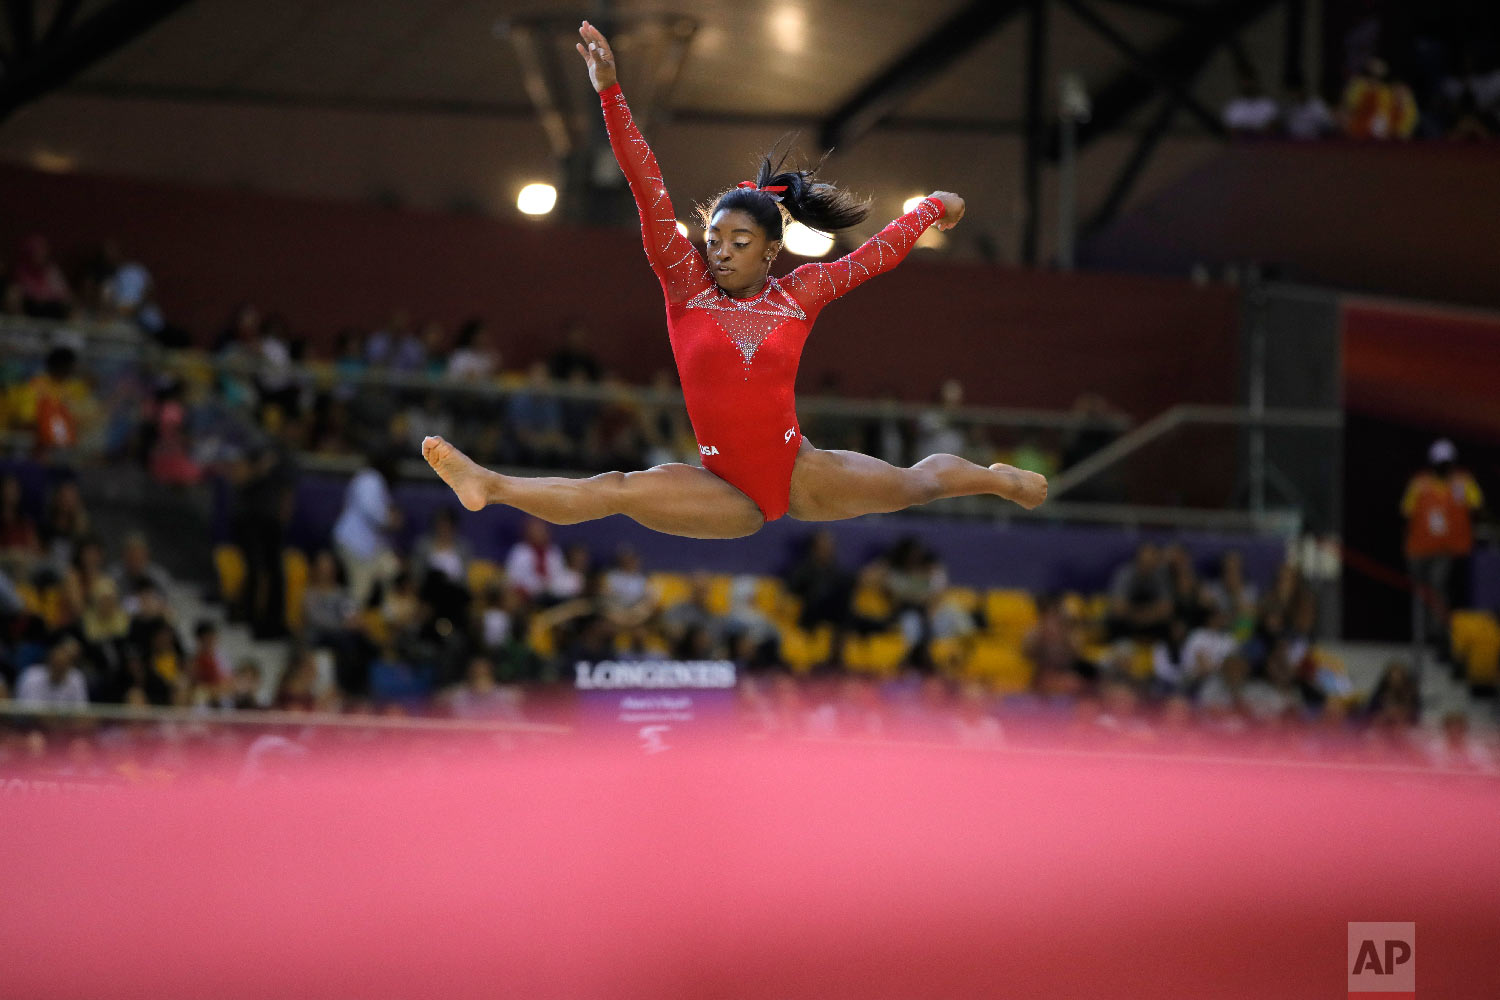 Gold medalist Simone Biles of the United States performs on the floor on the second and last day of the apparatus finals of the Gymnastics World Championships in Doha, Qatar, on Nov. 3, 2018. (AP Photo/Vadim Ghirda)